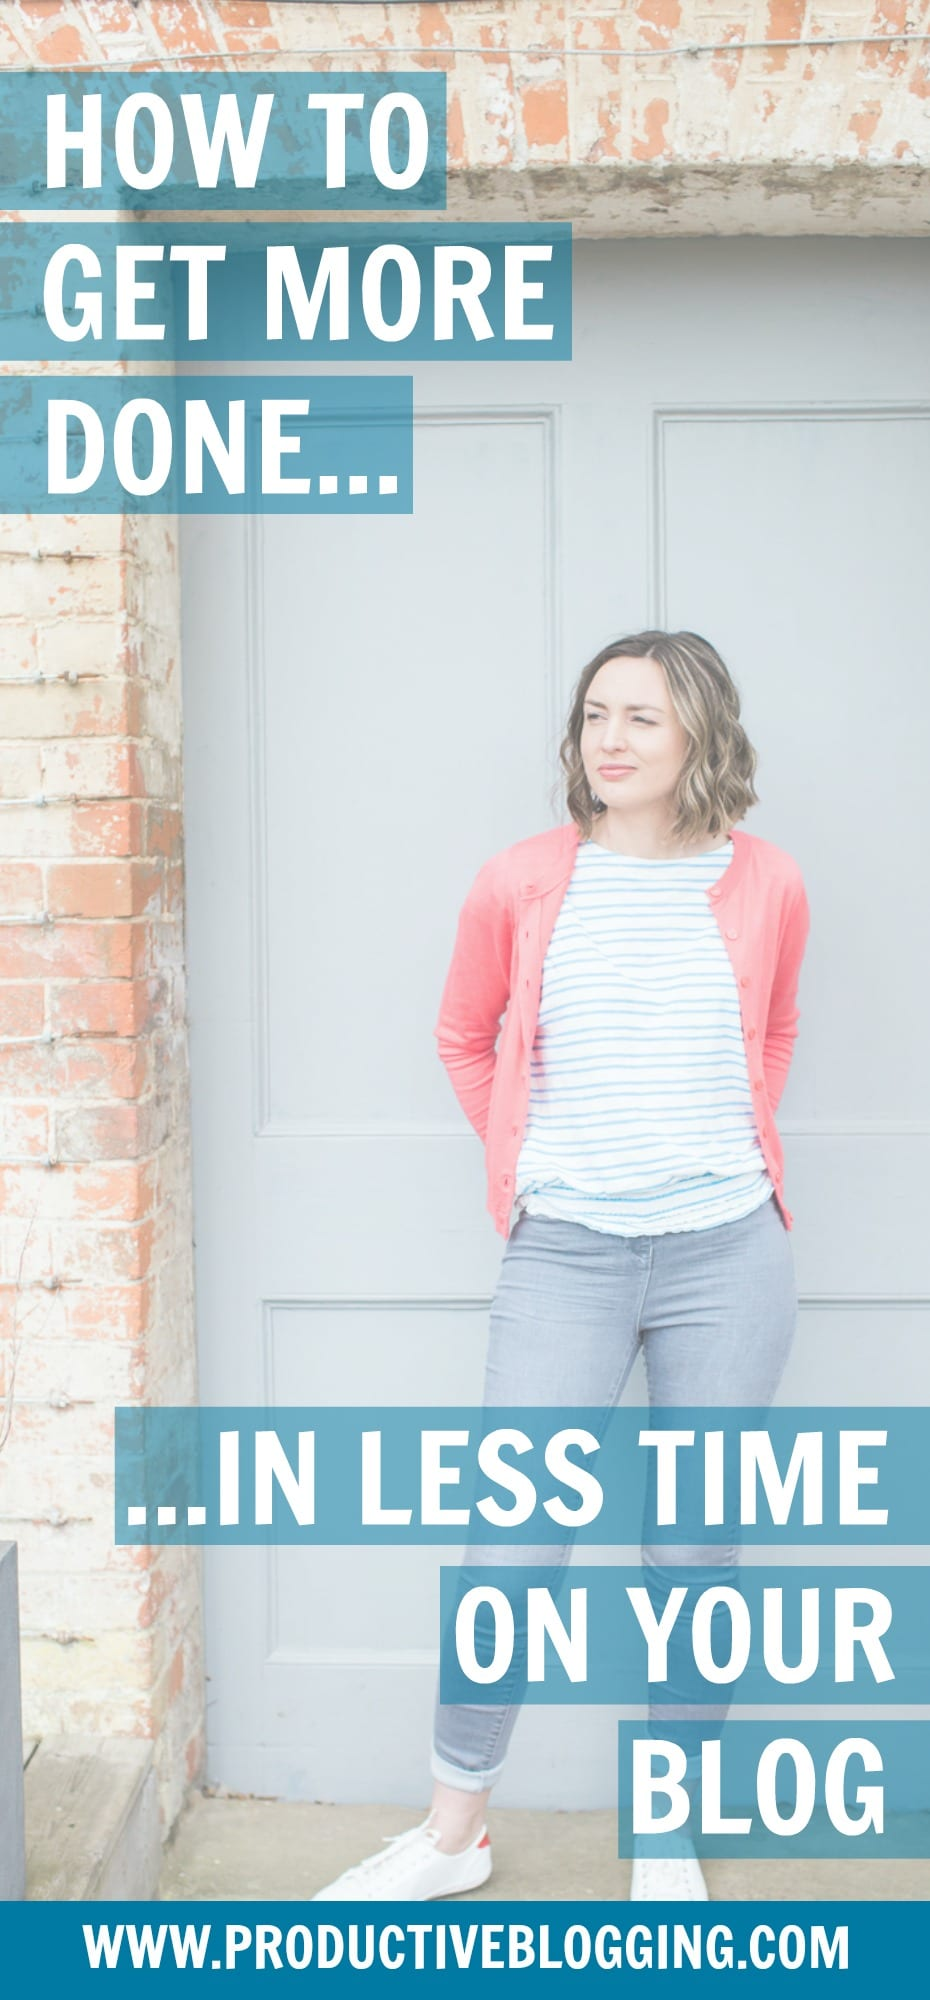 There is always so much you need and want to get done on your blog, but never enough time! But what if I told you, with a little bit of organisation and self-discipline, you could achieve more and have more free time? Find out how to get more done in less time on your blog… #productiveblogging #blogsmarternotharder #BSNH #todolist #weeklyplanning #timemanagement #efficiency #goals #blogging goals #blog #blogging #blogger #bloggingtips #productivity #organised #organized #productivity tips #productiveblogging